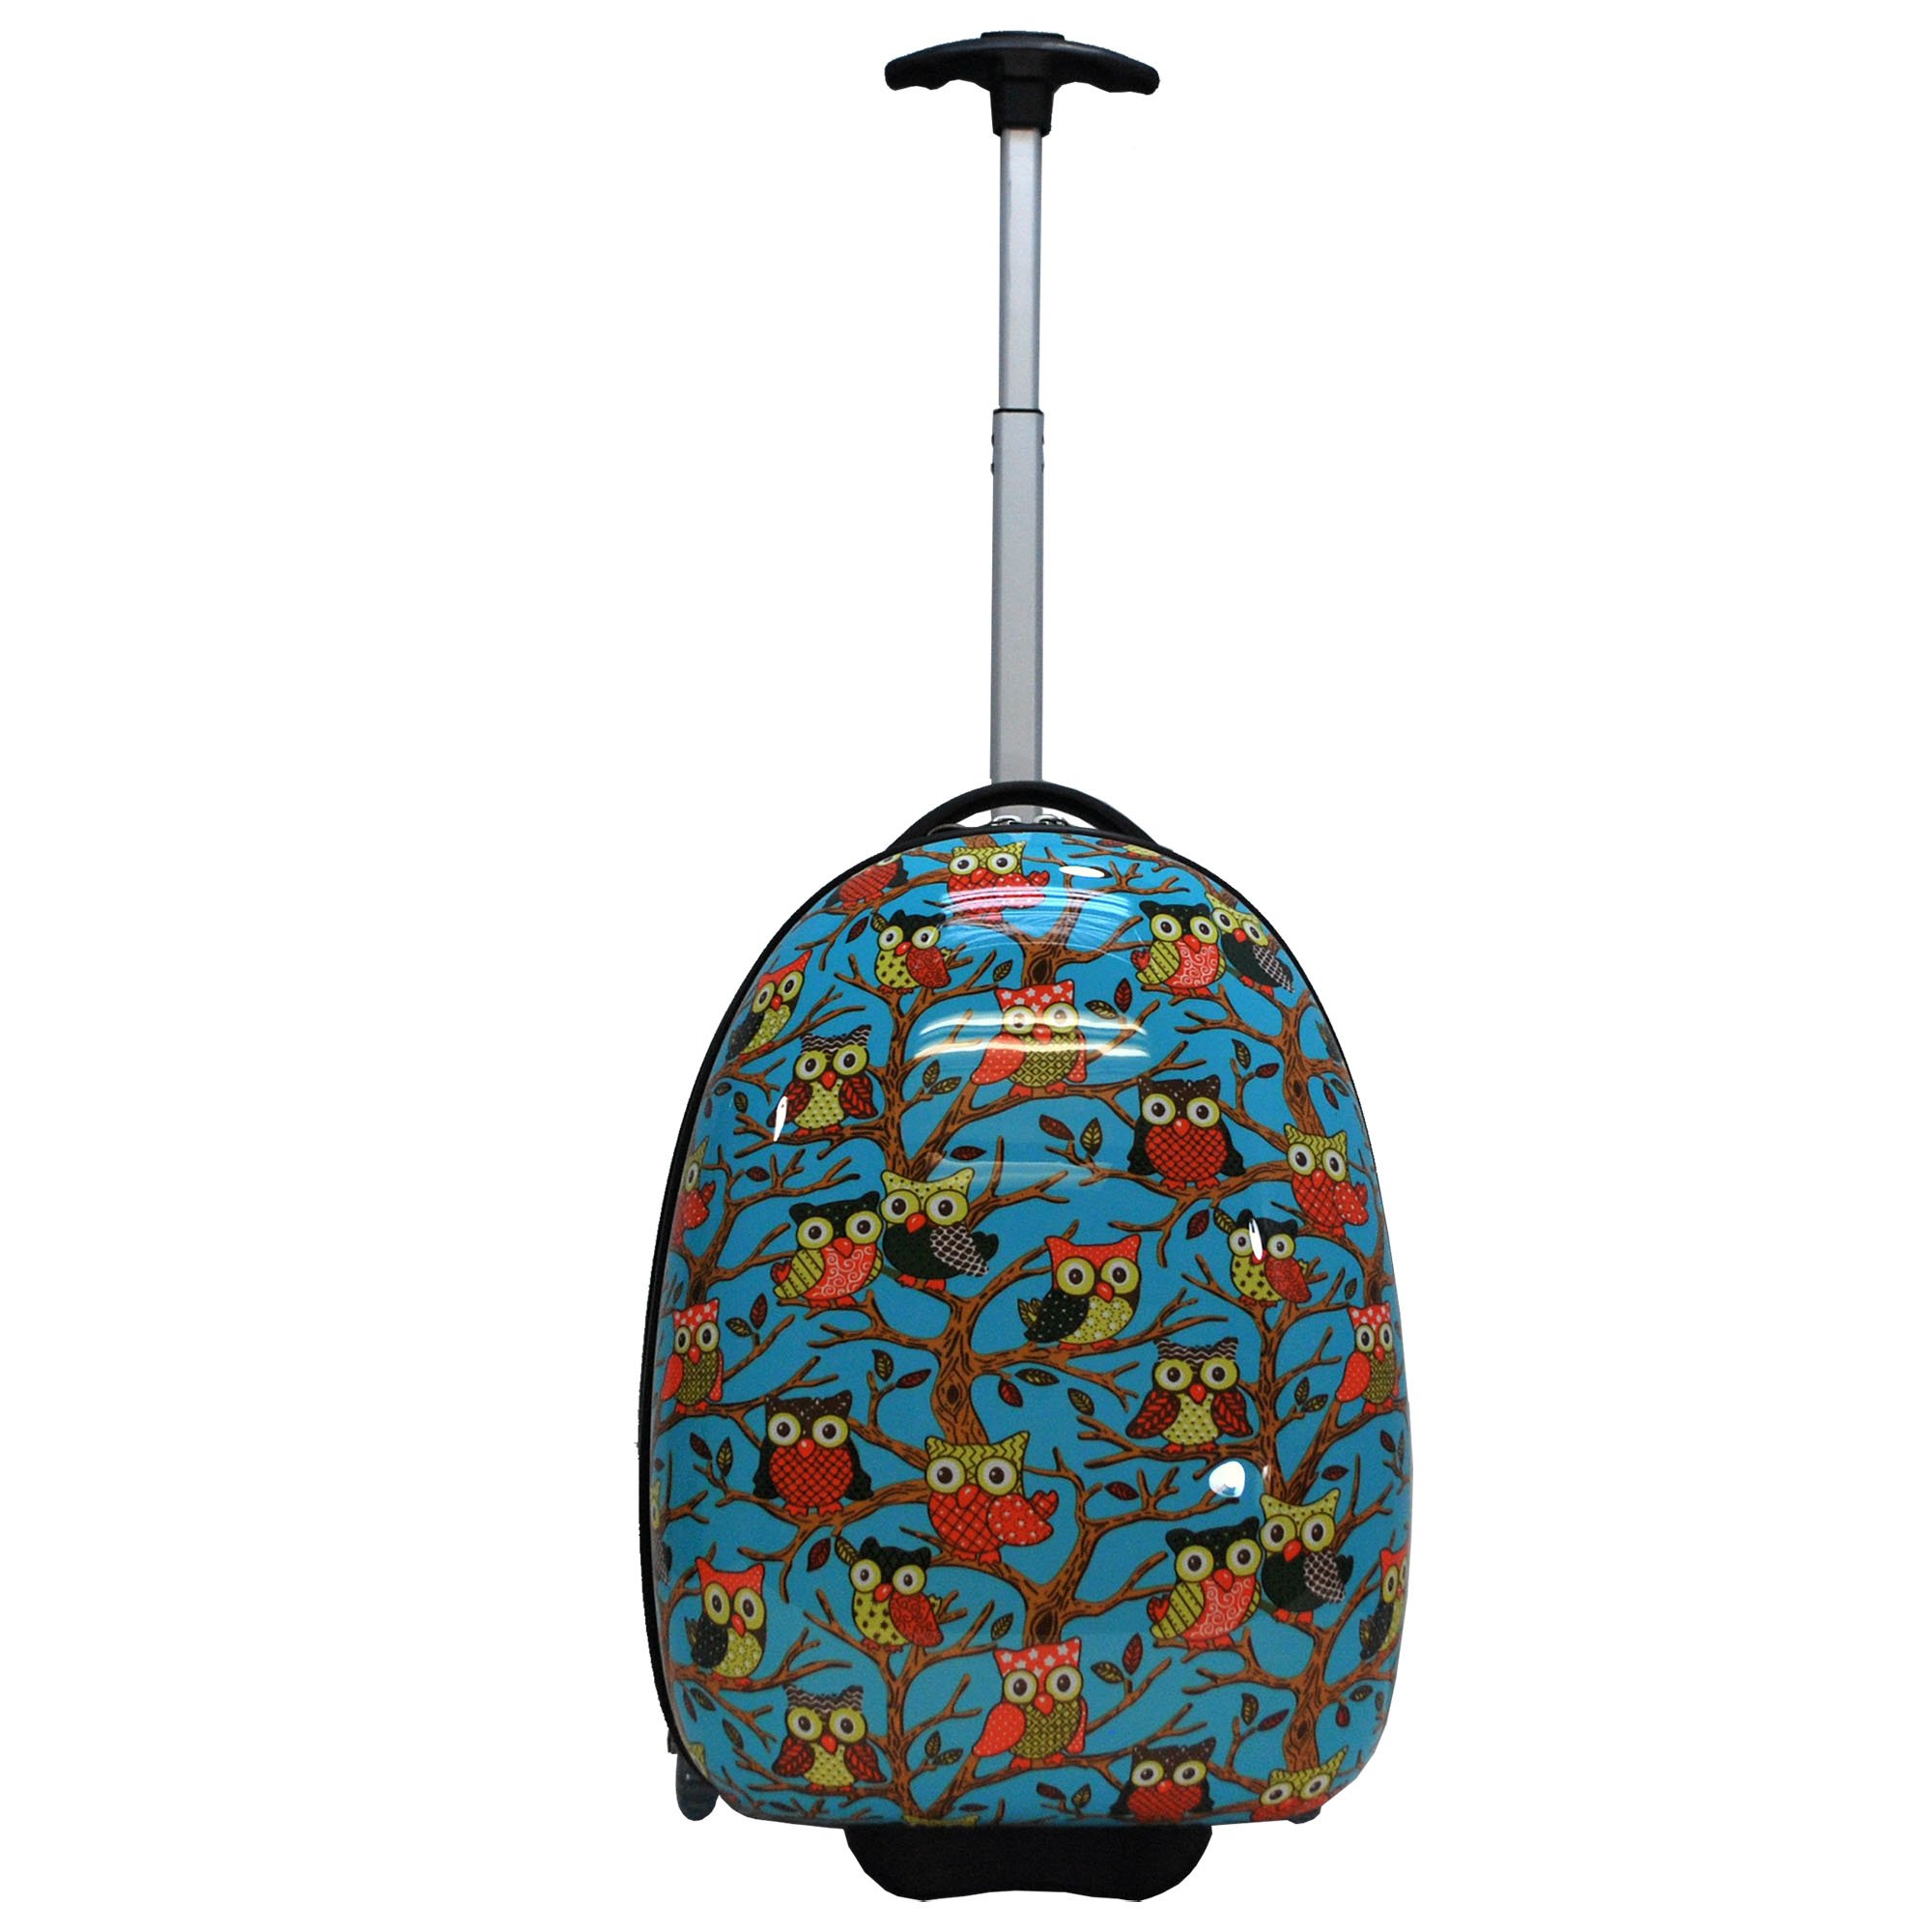 Owl Print Kids Hard Shell Luggage/Children Suitcase Carry On Luggage in 3 Colors (Blue)